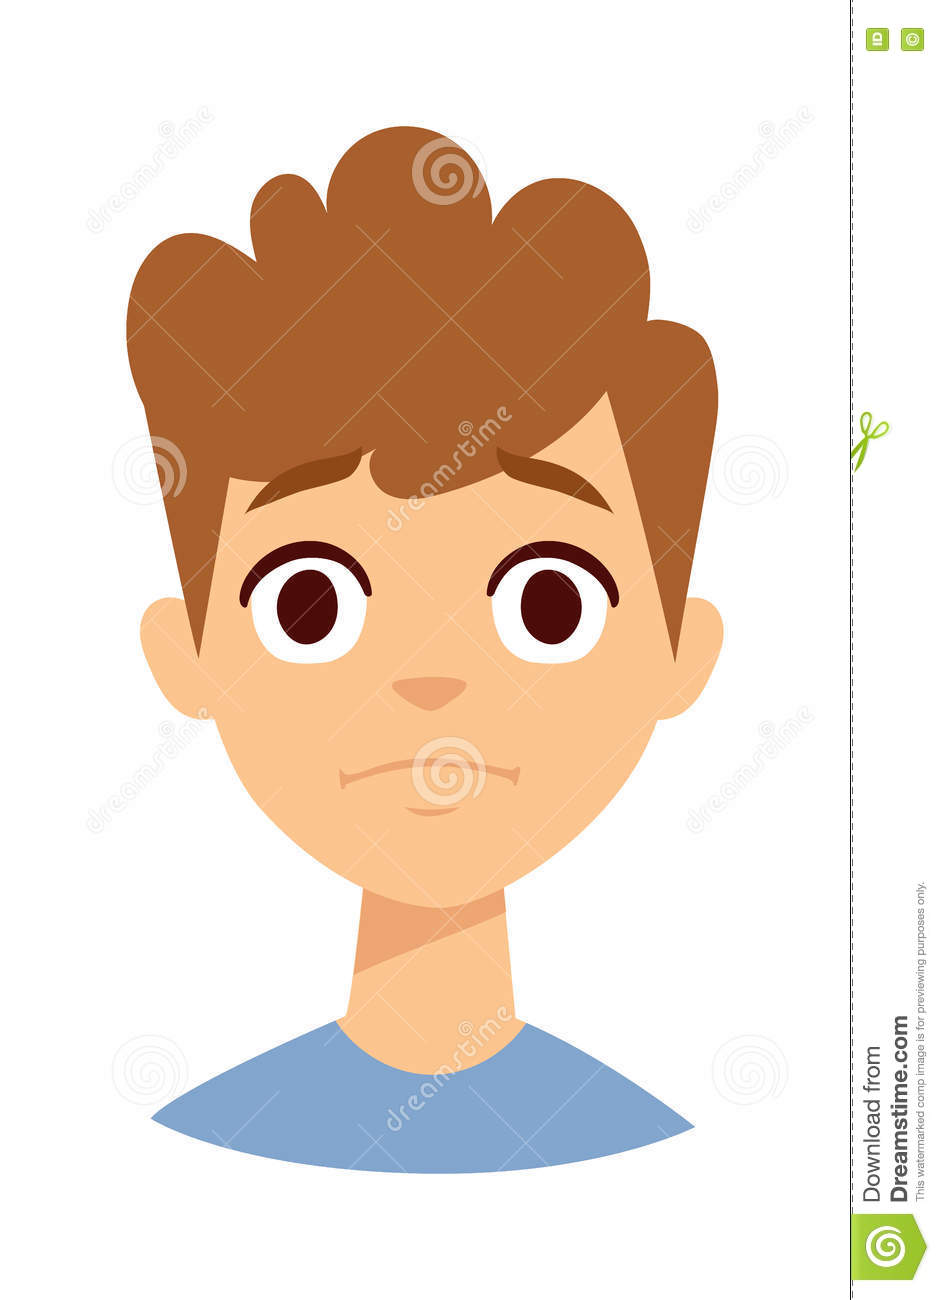 Angry Boy Vector Illustration. Stock Vector - Image: 71848595